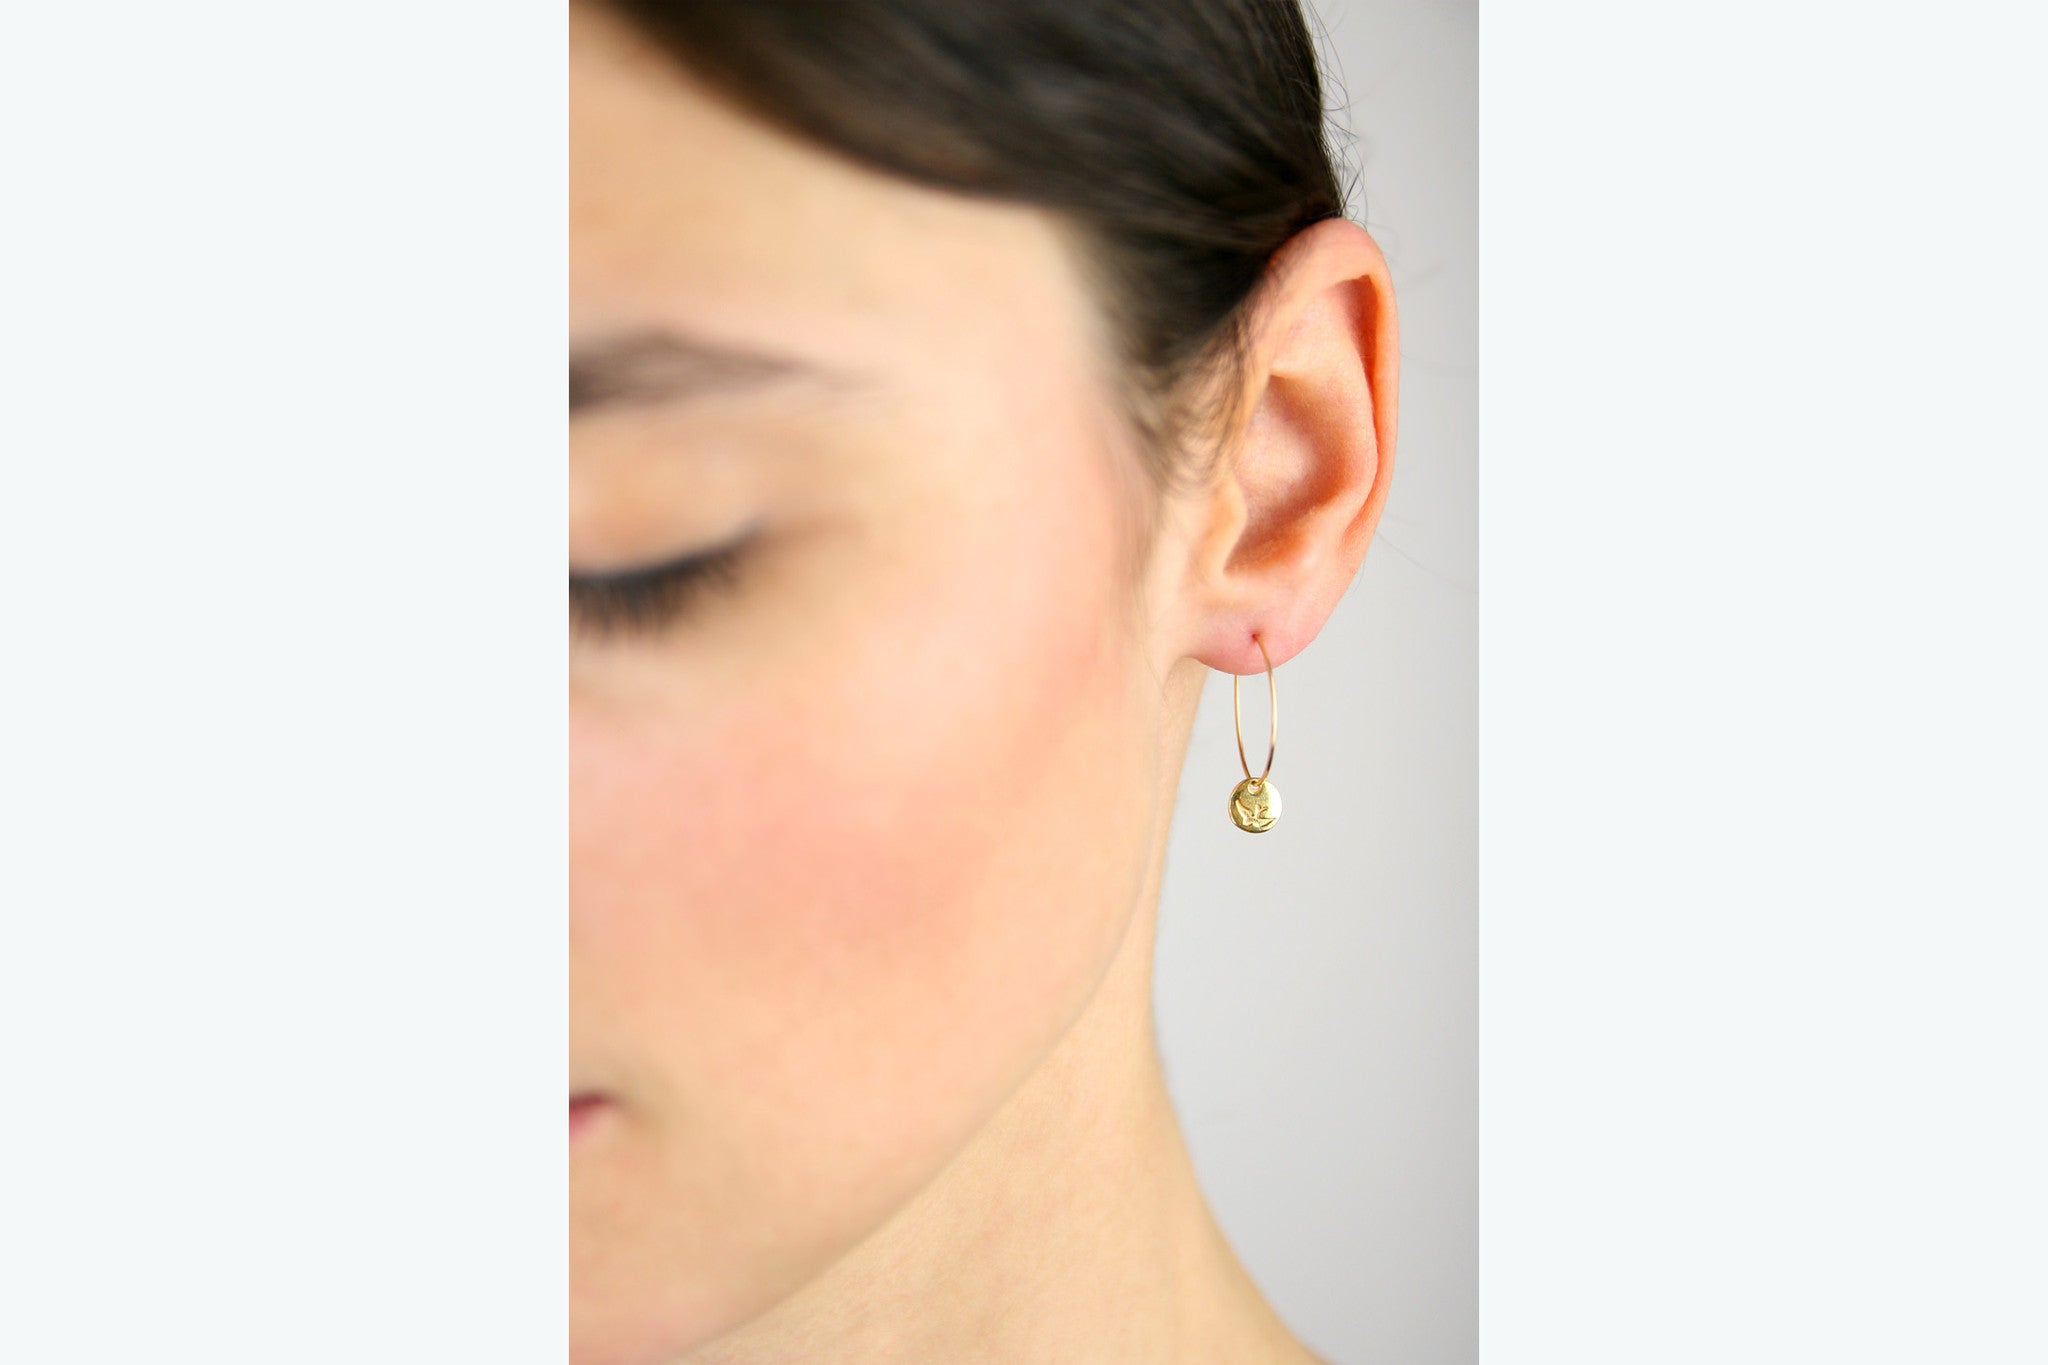 jewelberry ohrringe earrings bird token hoops yellow gold plated sterling silver fine jewelry handmade with love fairtrade